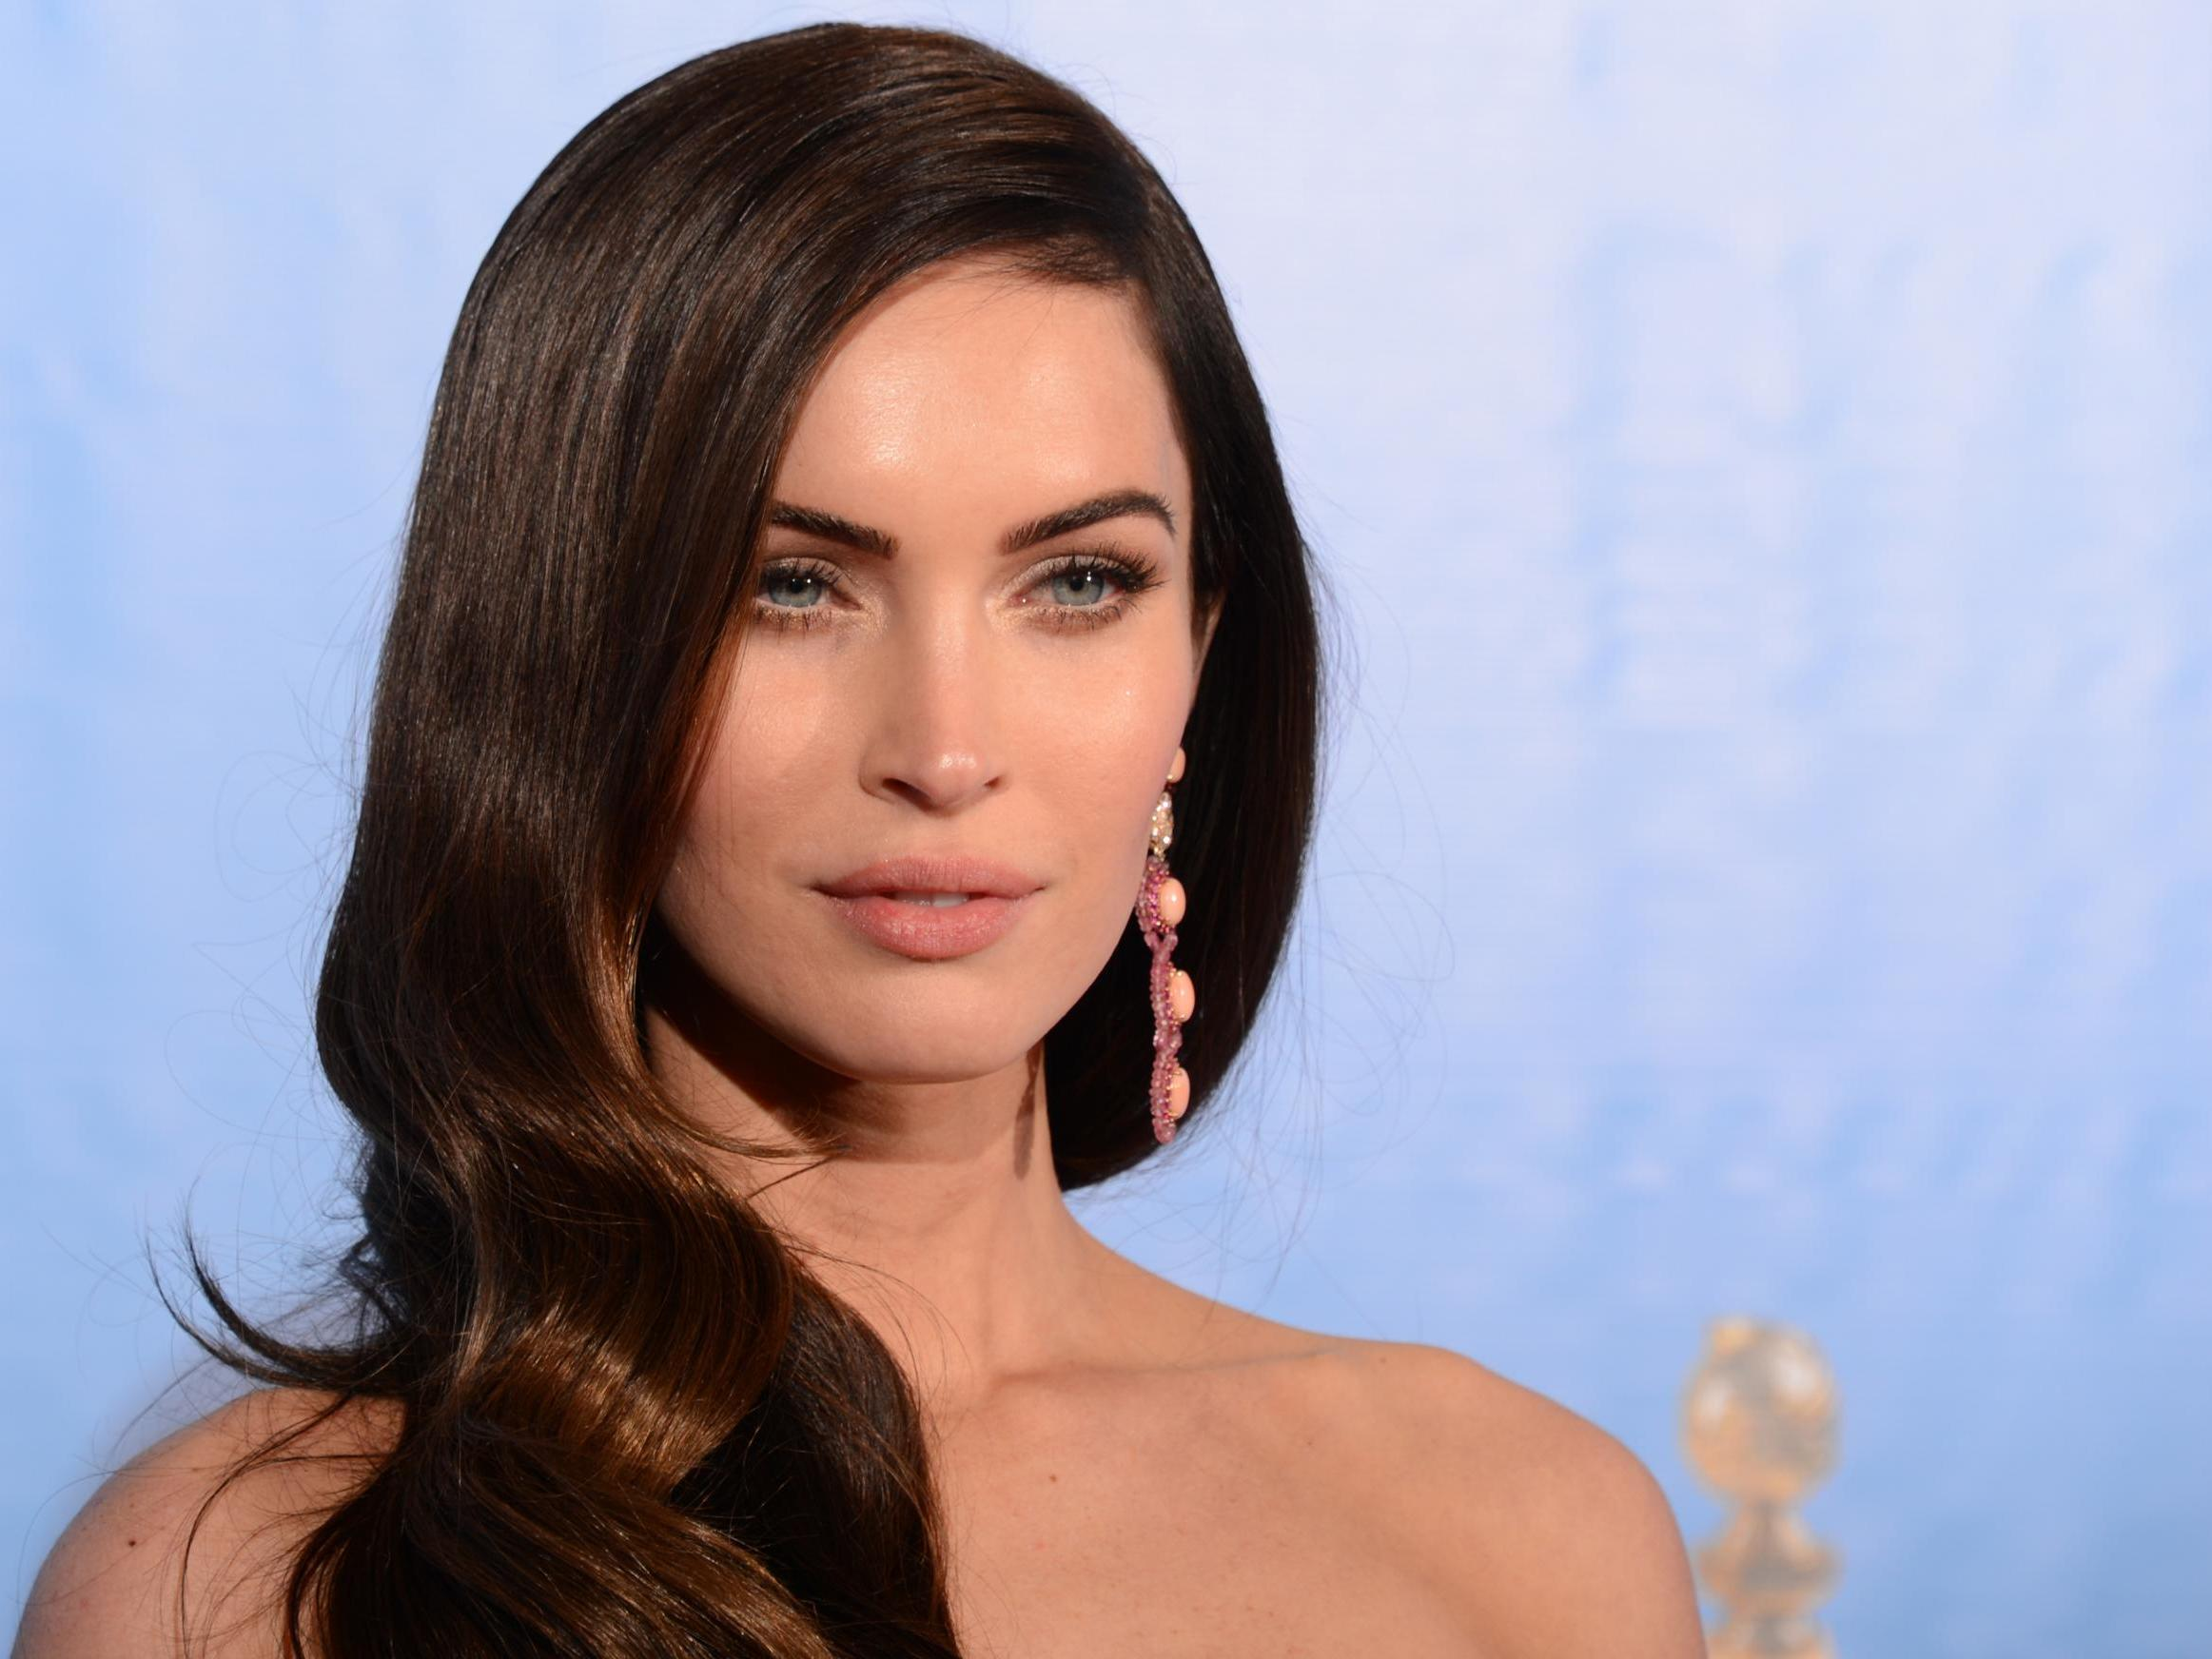 Megan Fox defends son's decision to wear dresses: 'I'm trying to teach him to be confident'